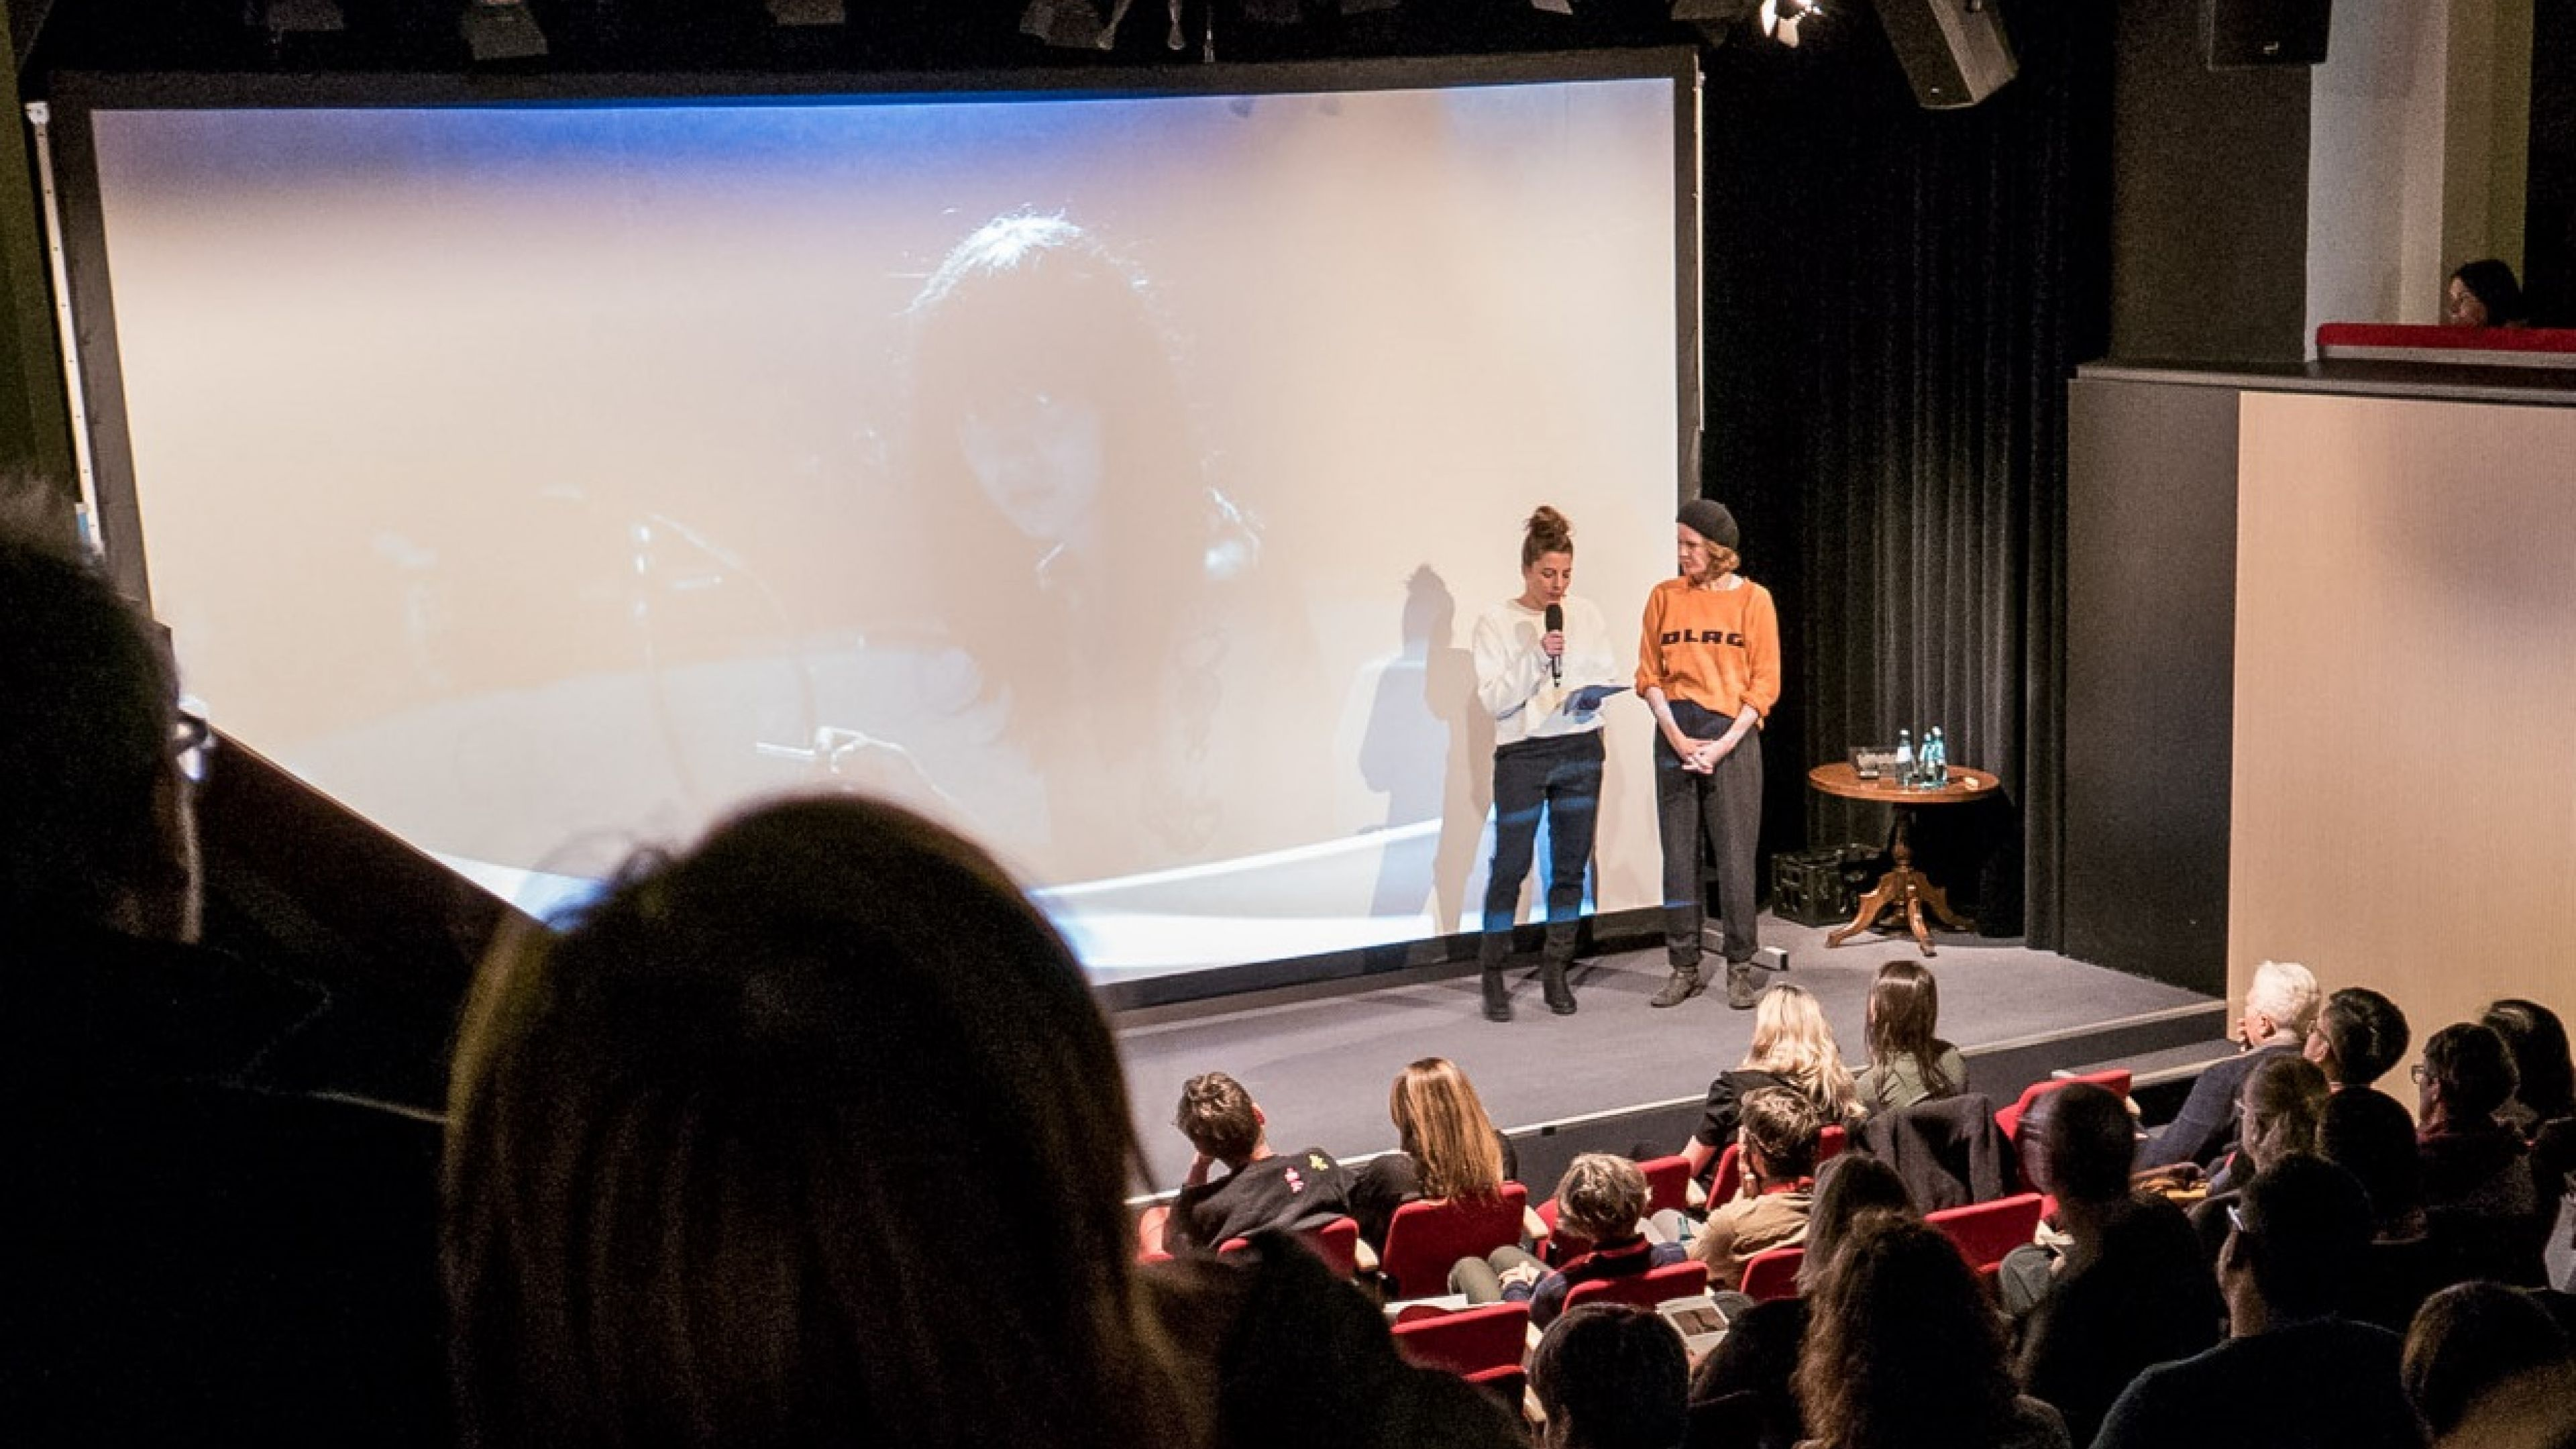 Two woman standing on a stage in front of a big screen talking to the audience